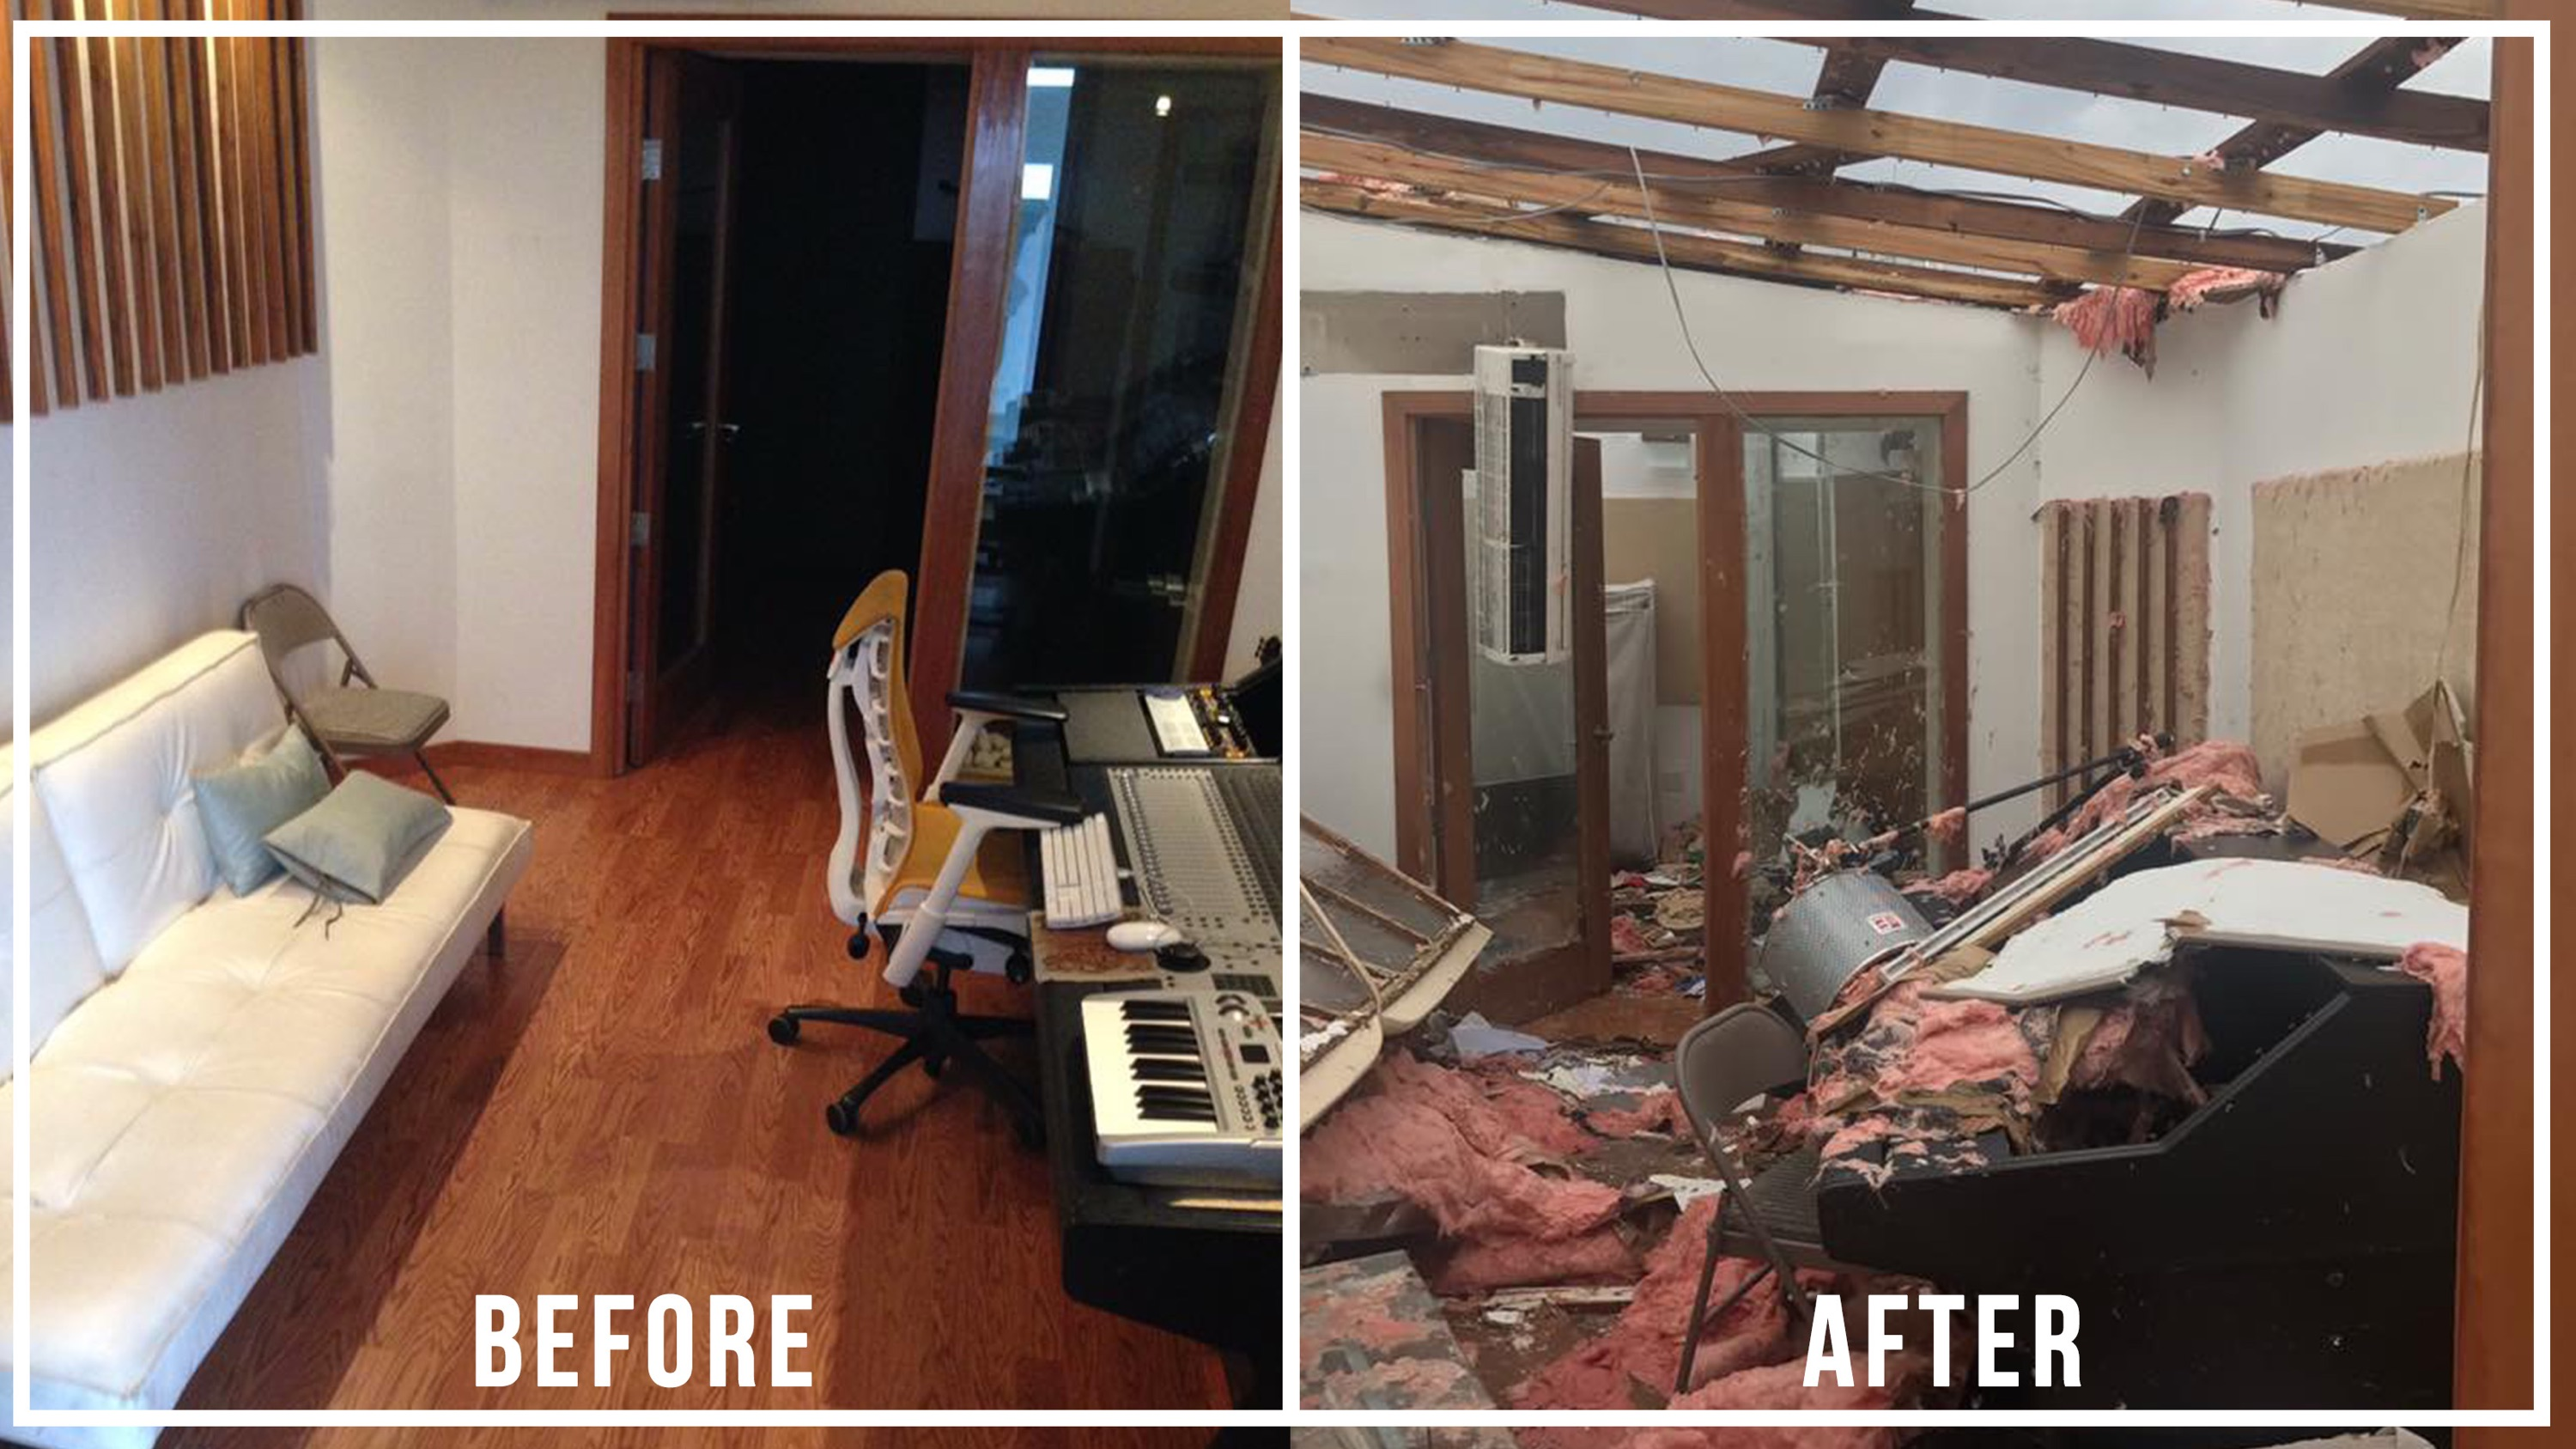 Here's How You Can Help Rebuild One of Puerto Rico's Most Important Music Studios